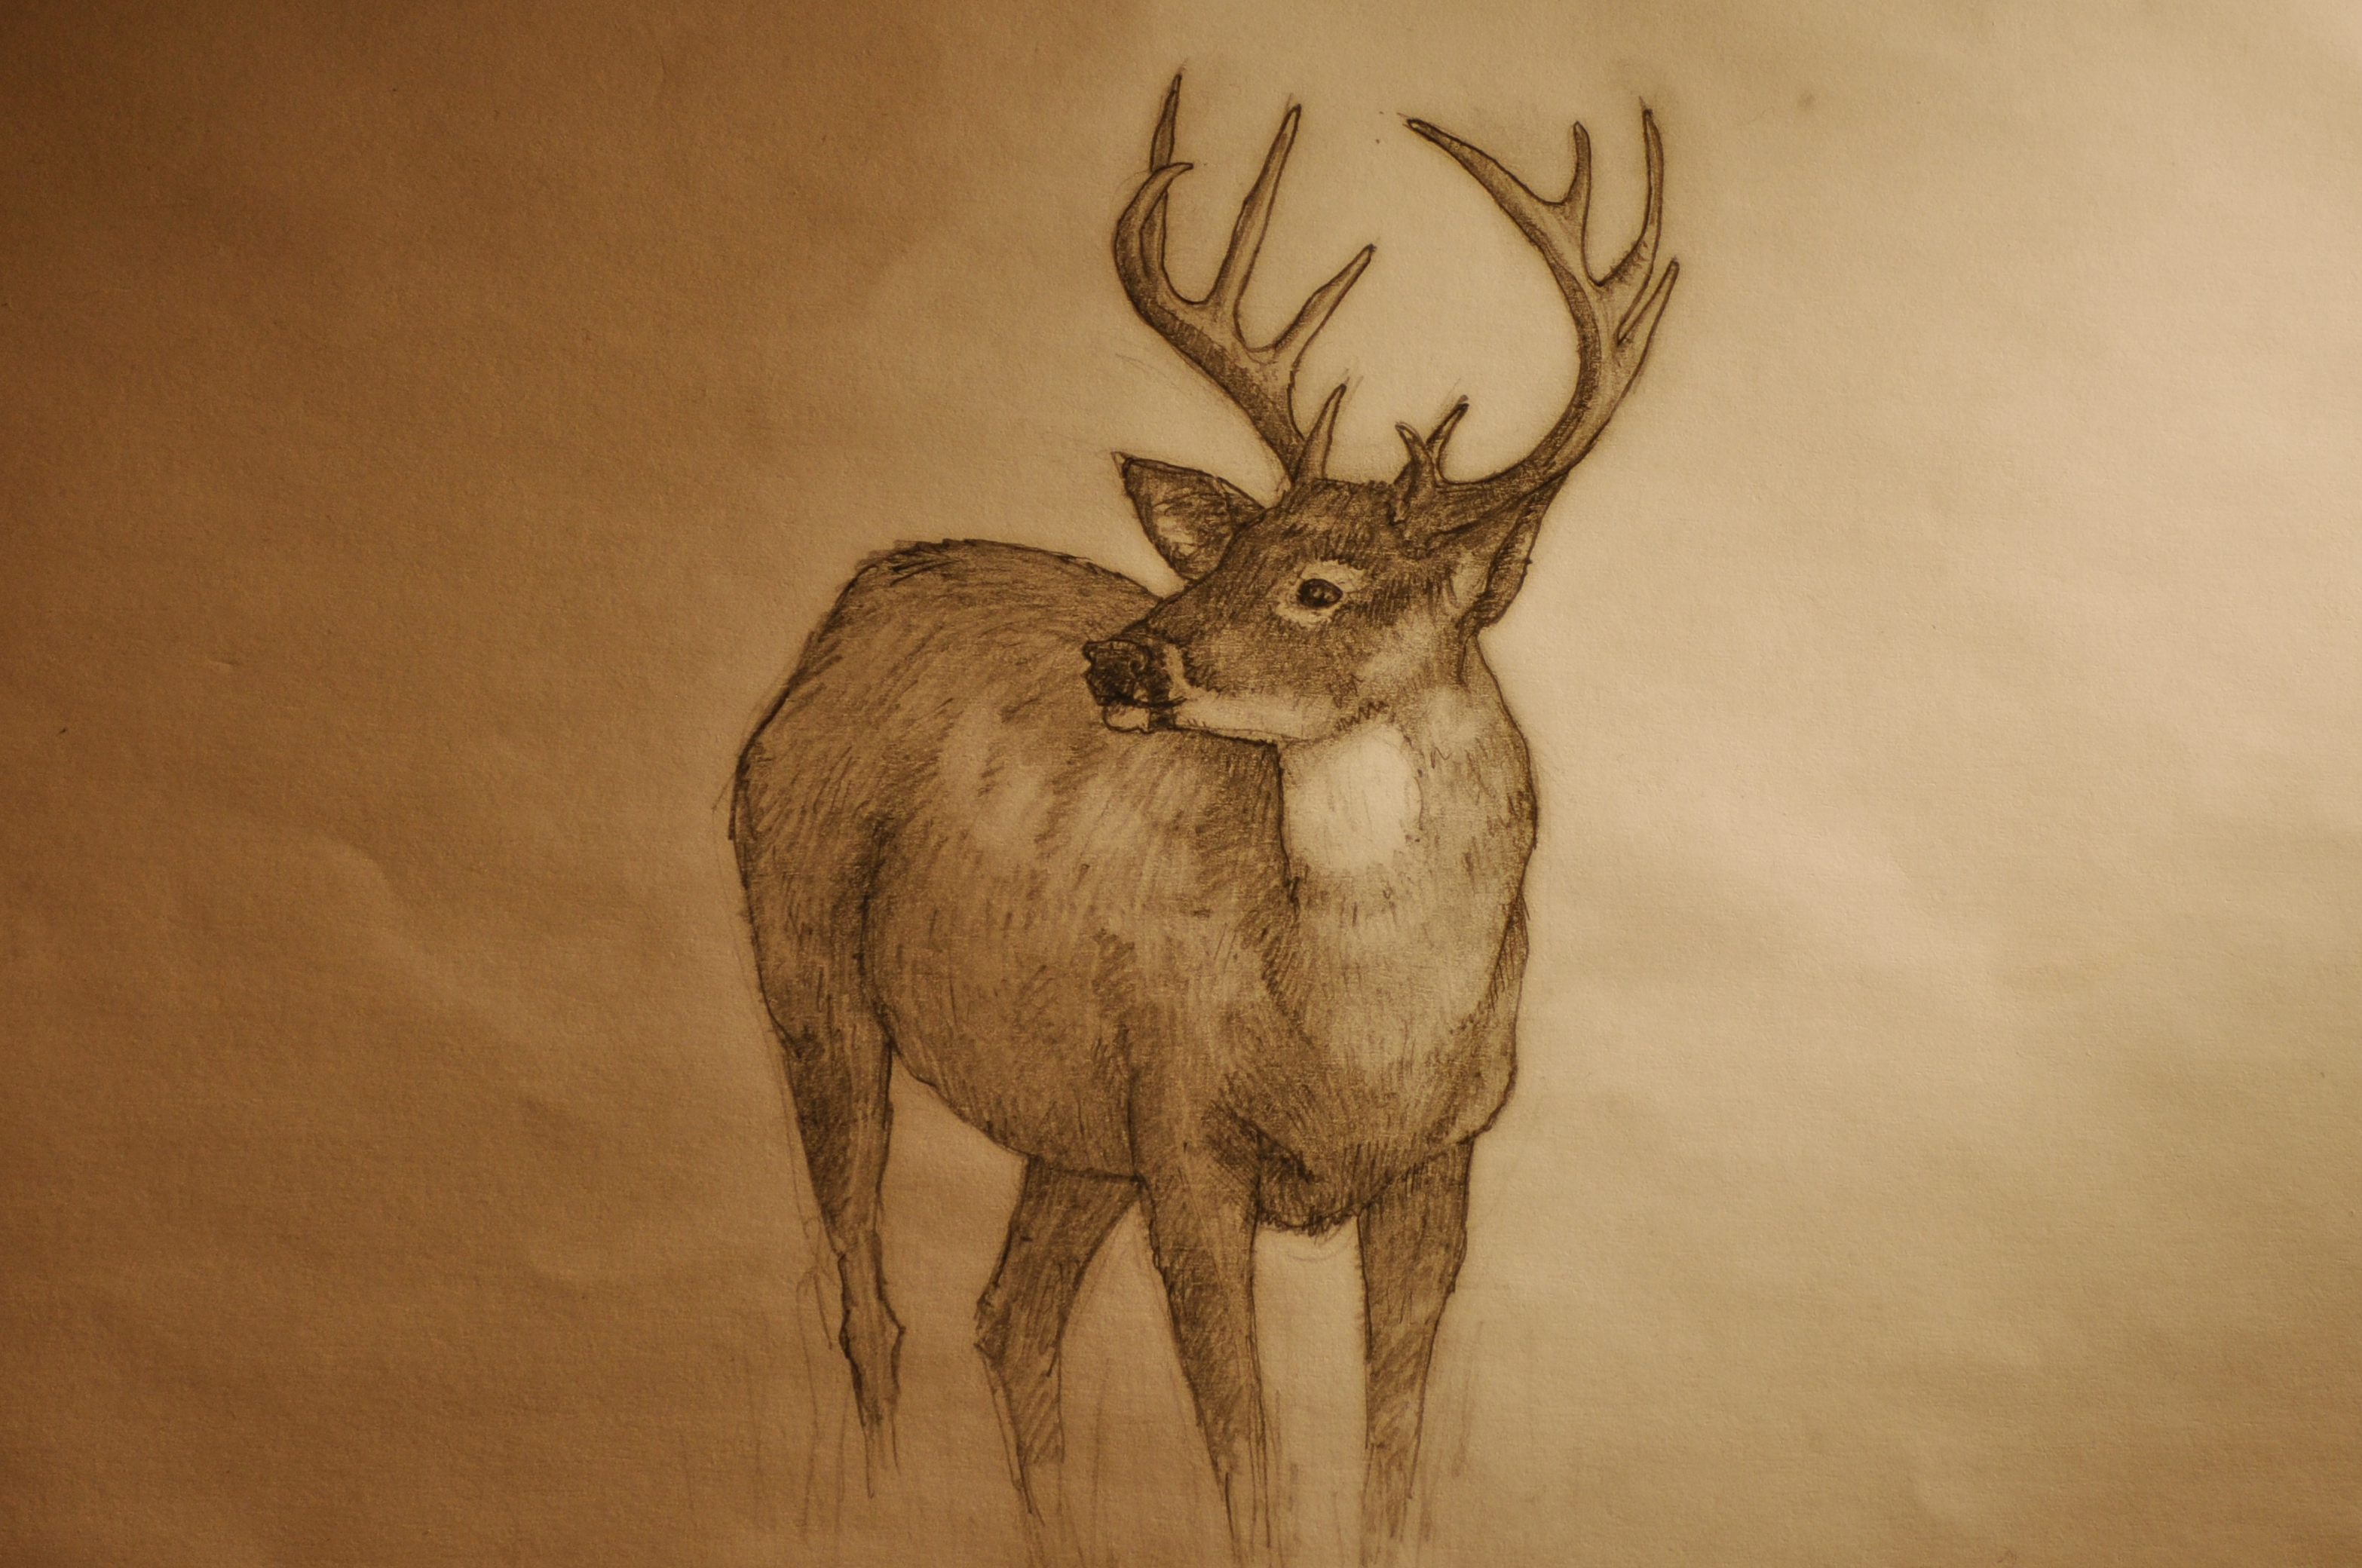 3133x2080 In This Quick Tutorial You'Ll Learn How To Draw Deer In Just